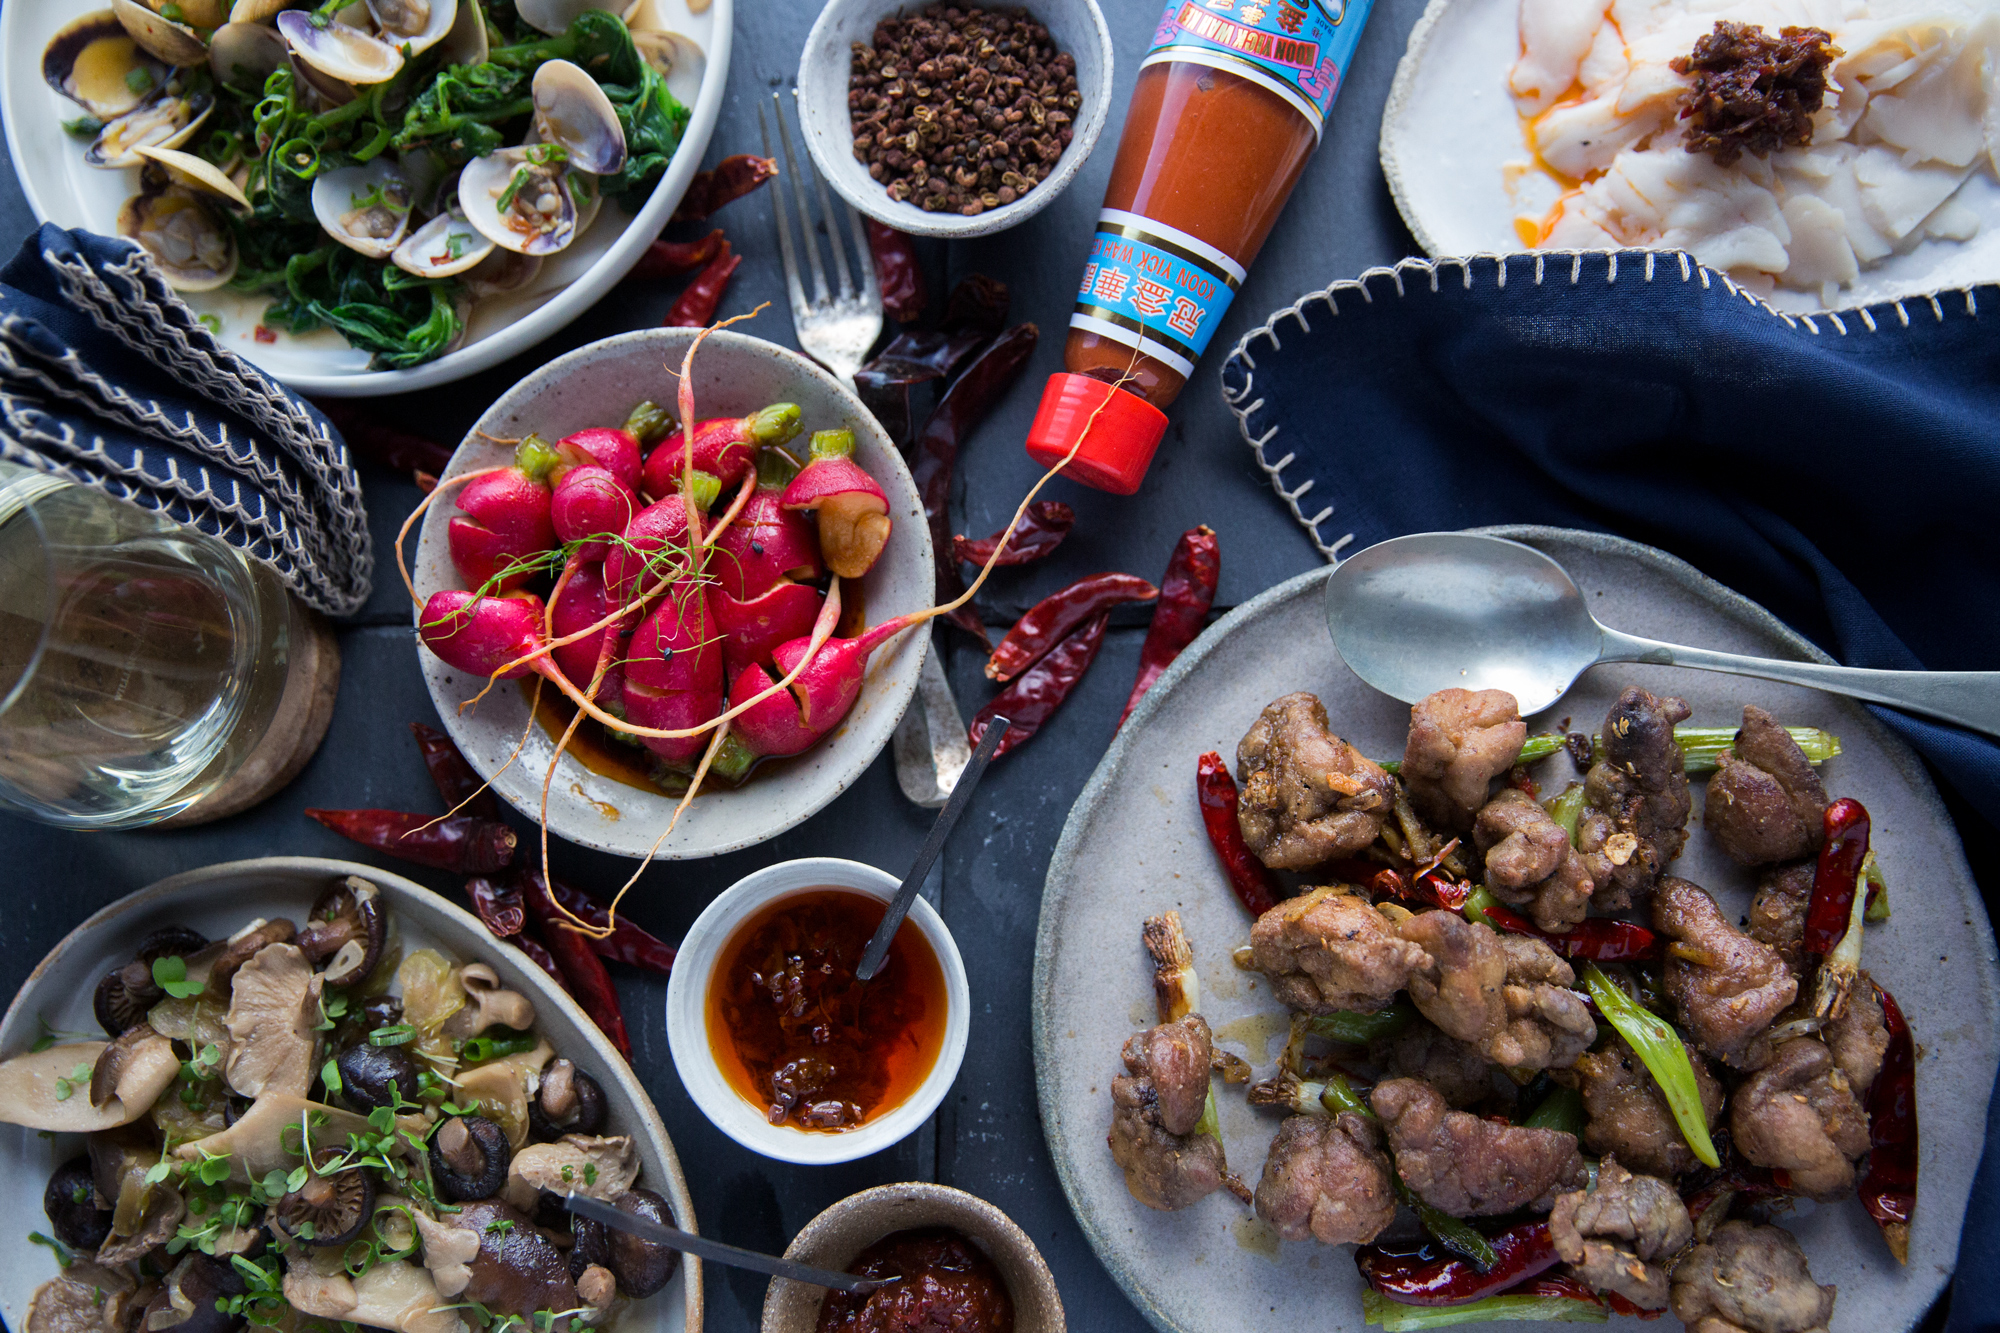 Salt and pepper sweetbreads, radishes with chilli oil, stir fried mushrooms with cuttlefish, clams with samphire and XO.